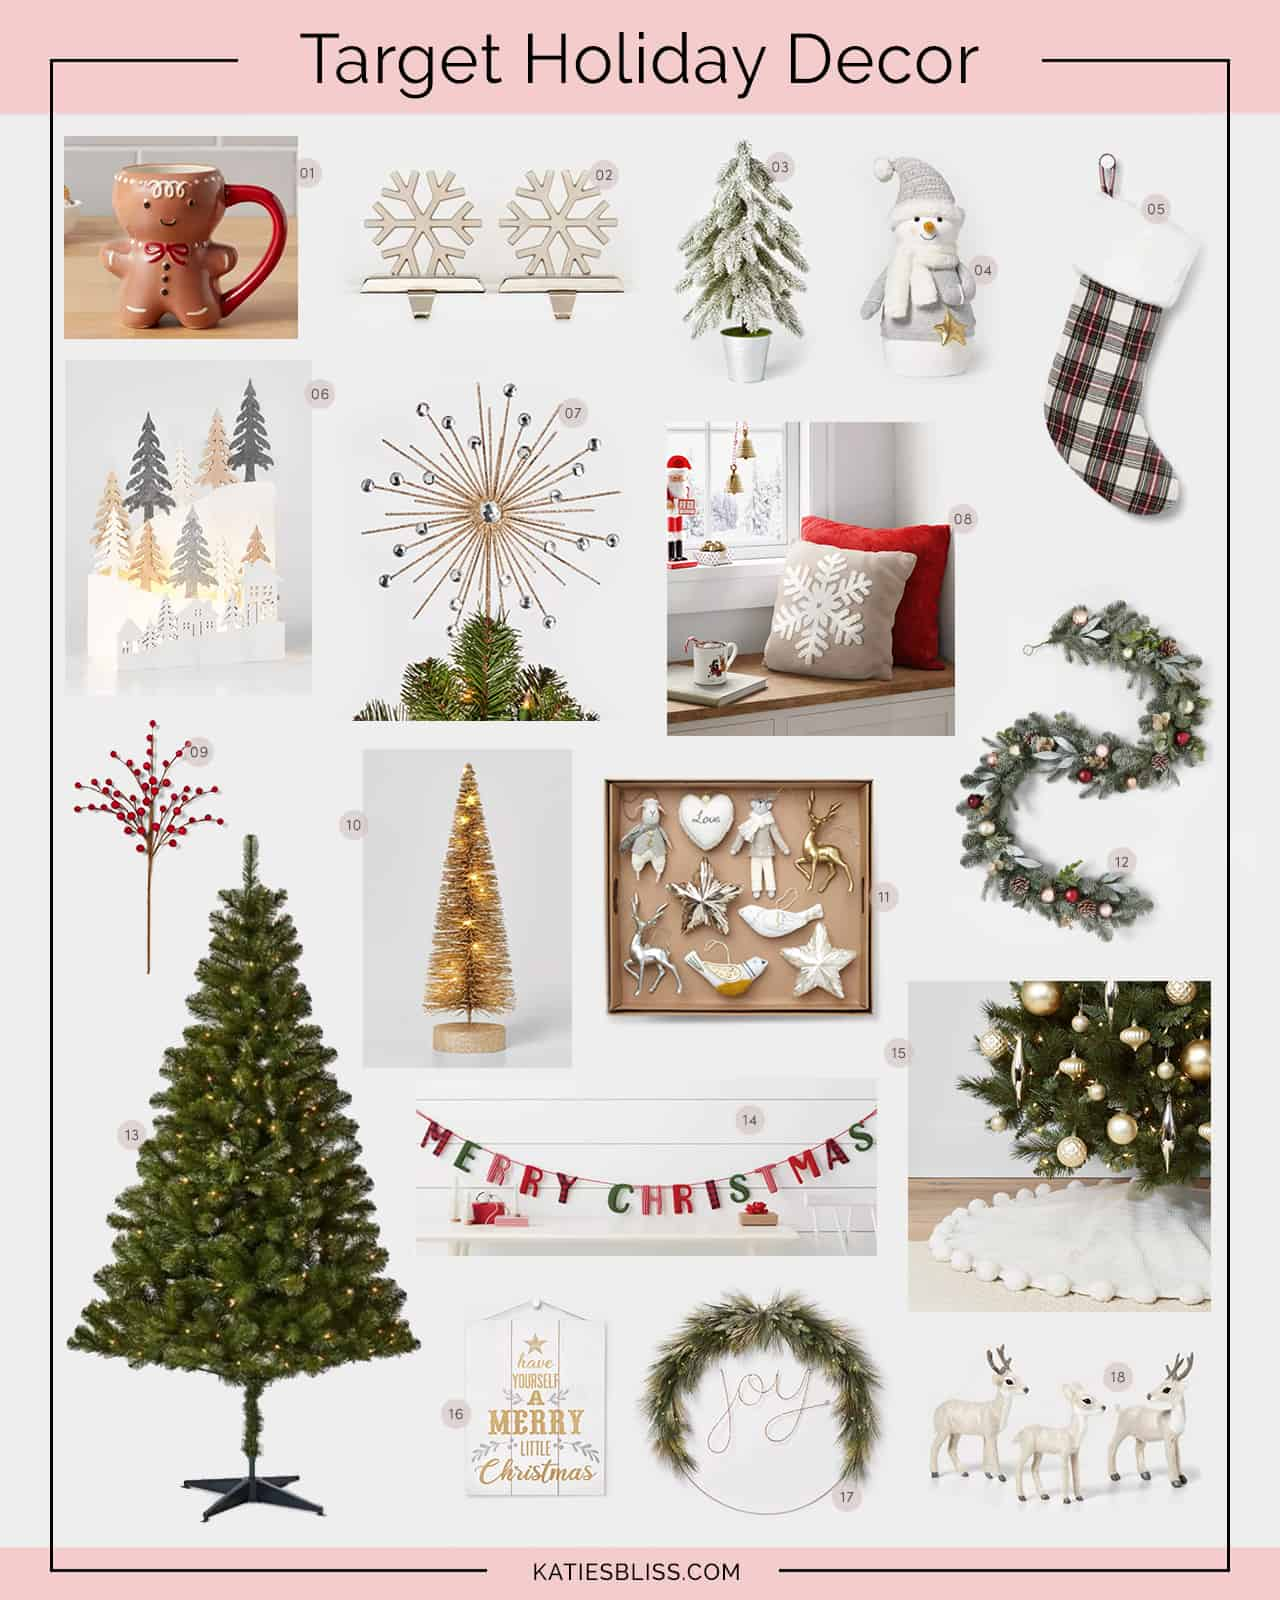 Katies Bliss Target Holiday Decor